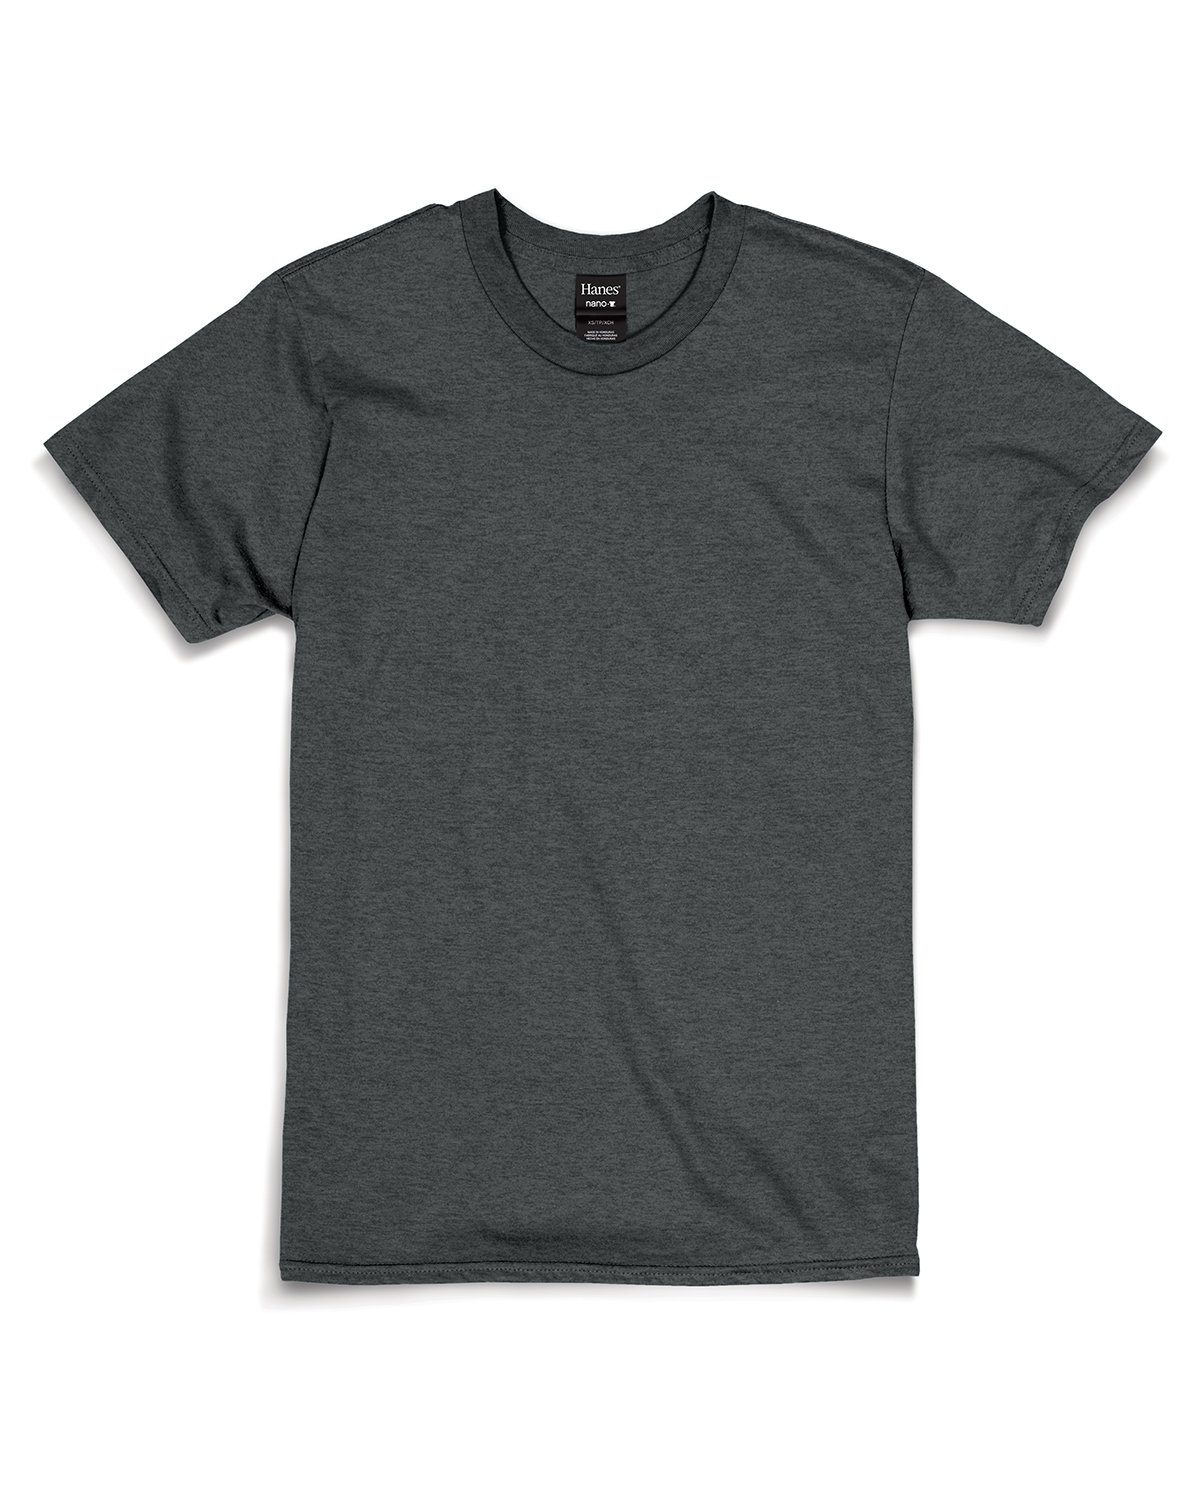 Hanes Unisex Nano-T® T-Shirt CHARCOAL HEATHER